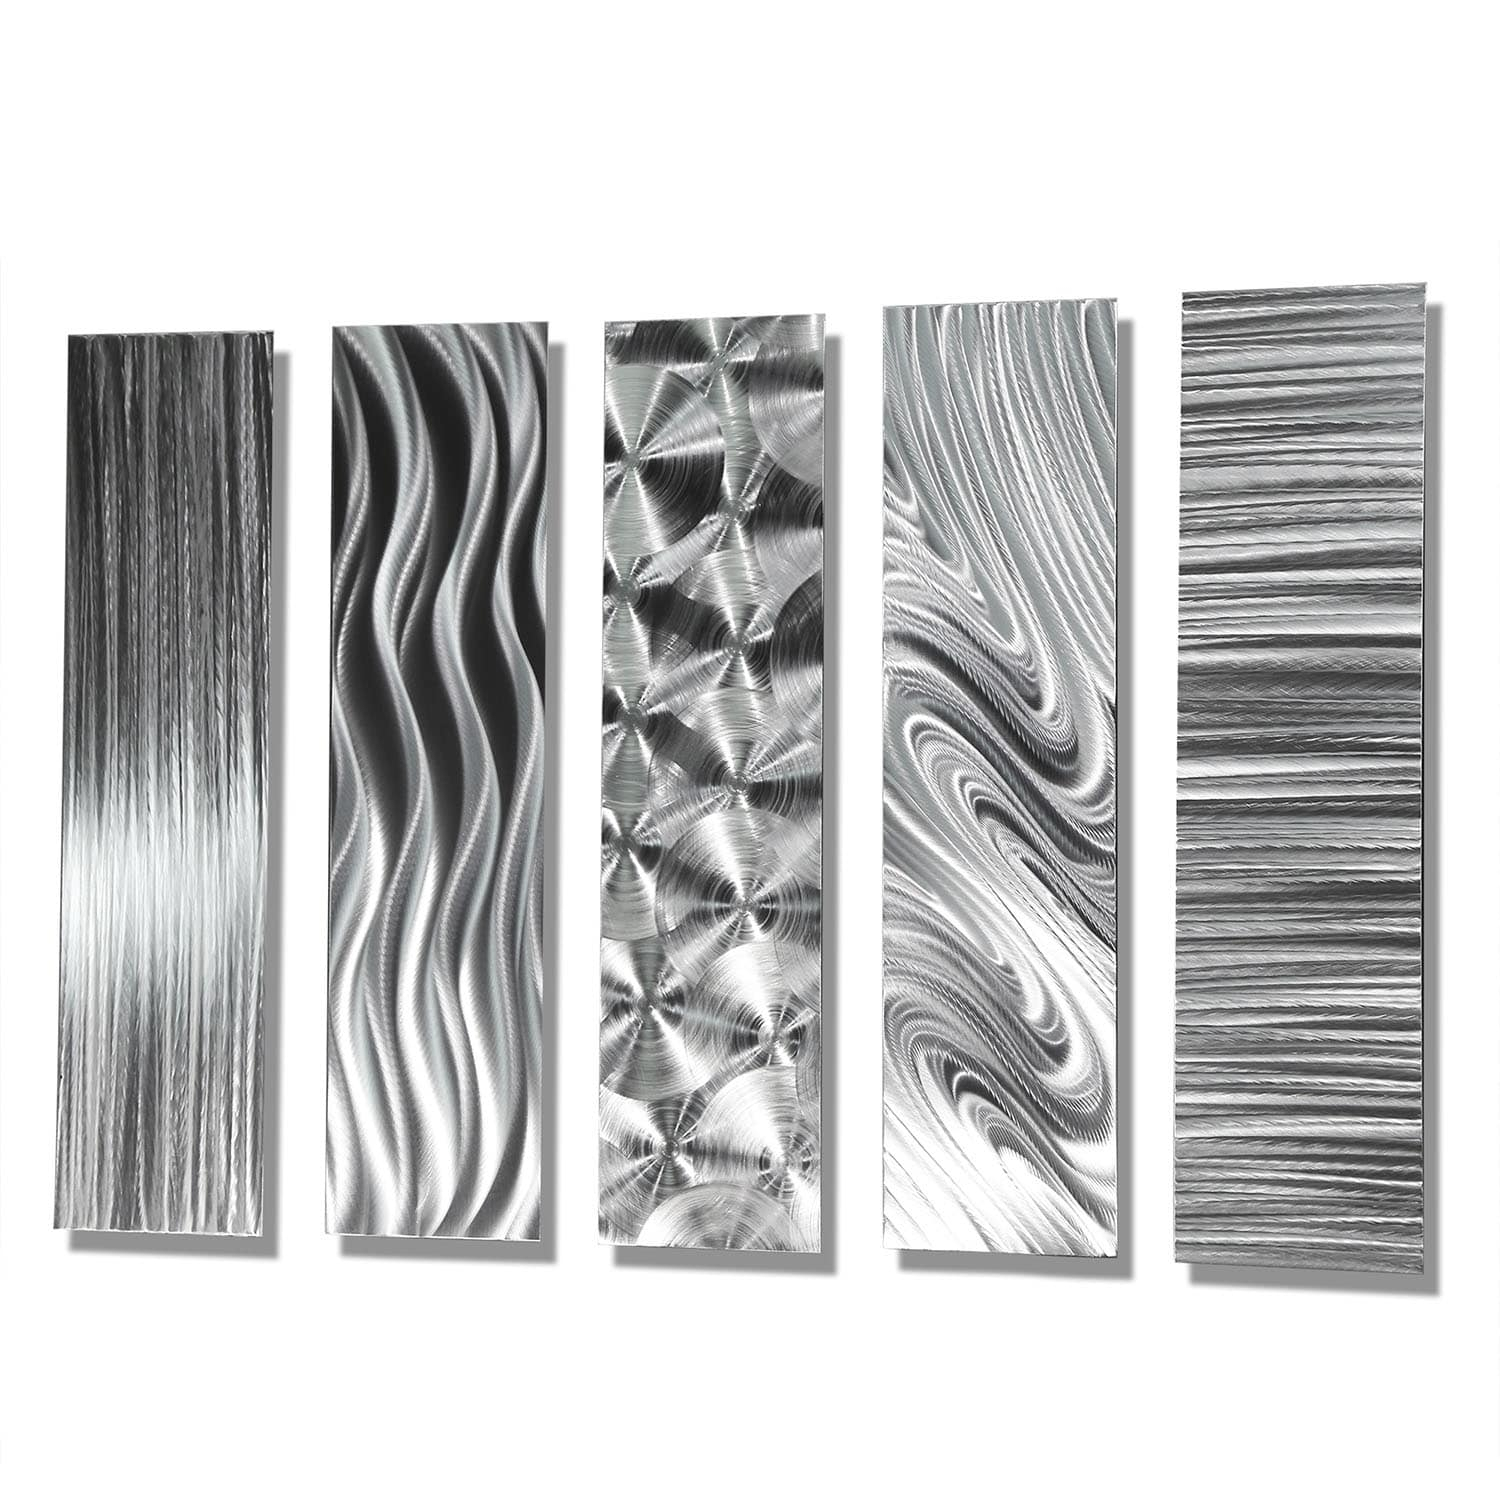 Statements2000 Set Of 5 Silver Metal Wall Art Accentsjon Allen For Newest Wall Art Accents (View 13 of 15)